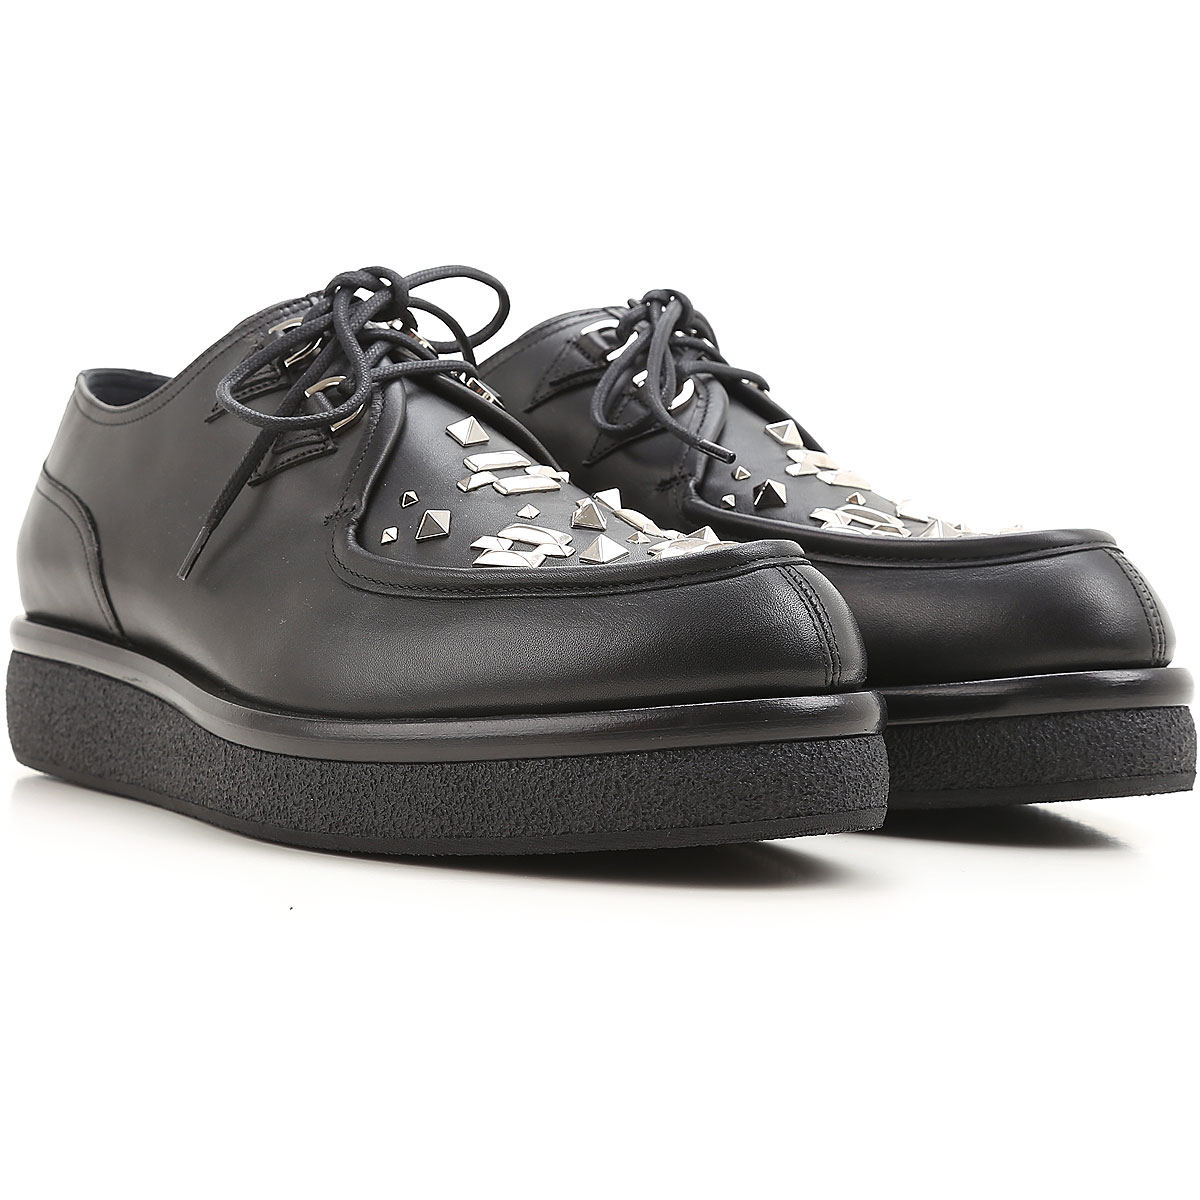 Valentino Garavani Lace Up Shoes for Men Oxfords, Derbies and Brogues On Sale in Outlet, Black, Leather, 2019, 6.5 7 7.5 7.75